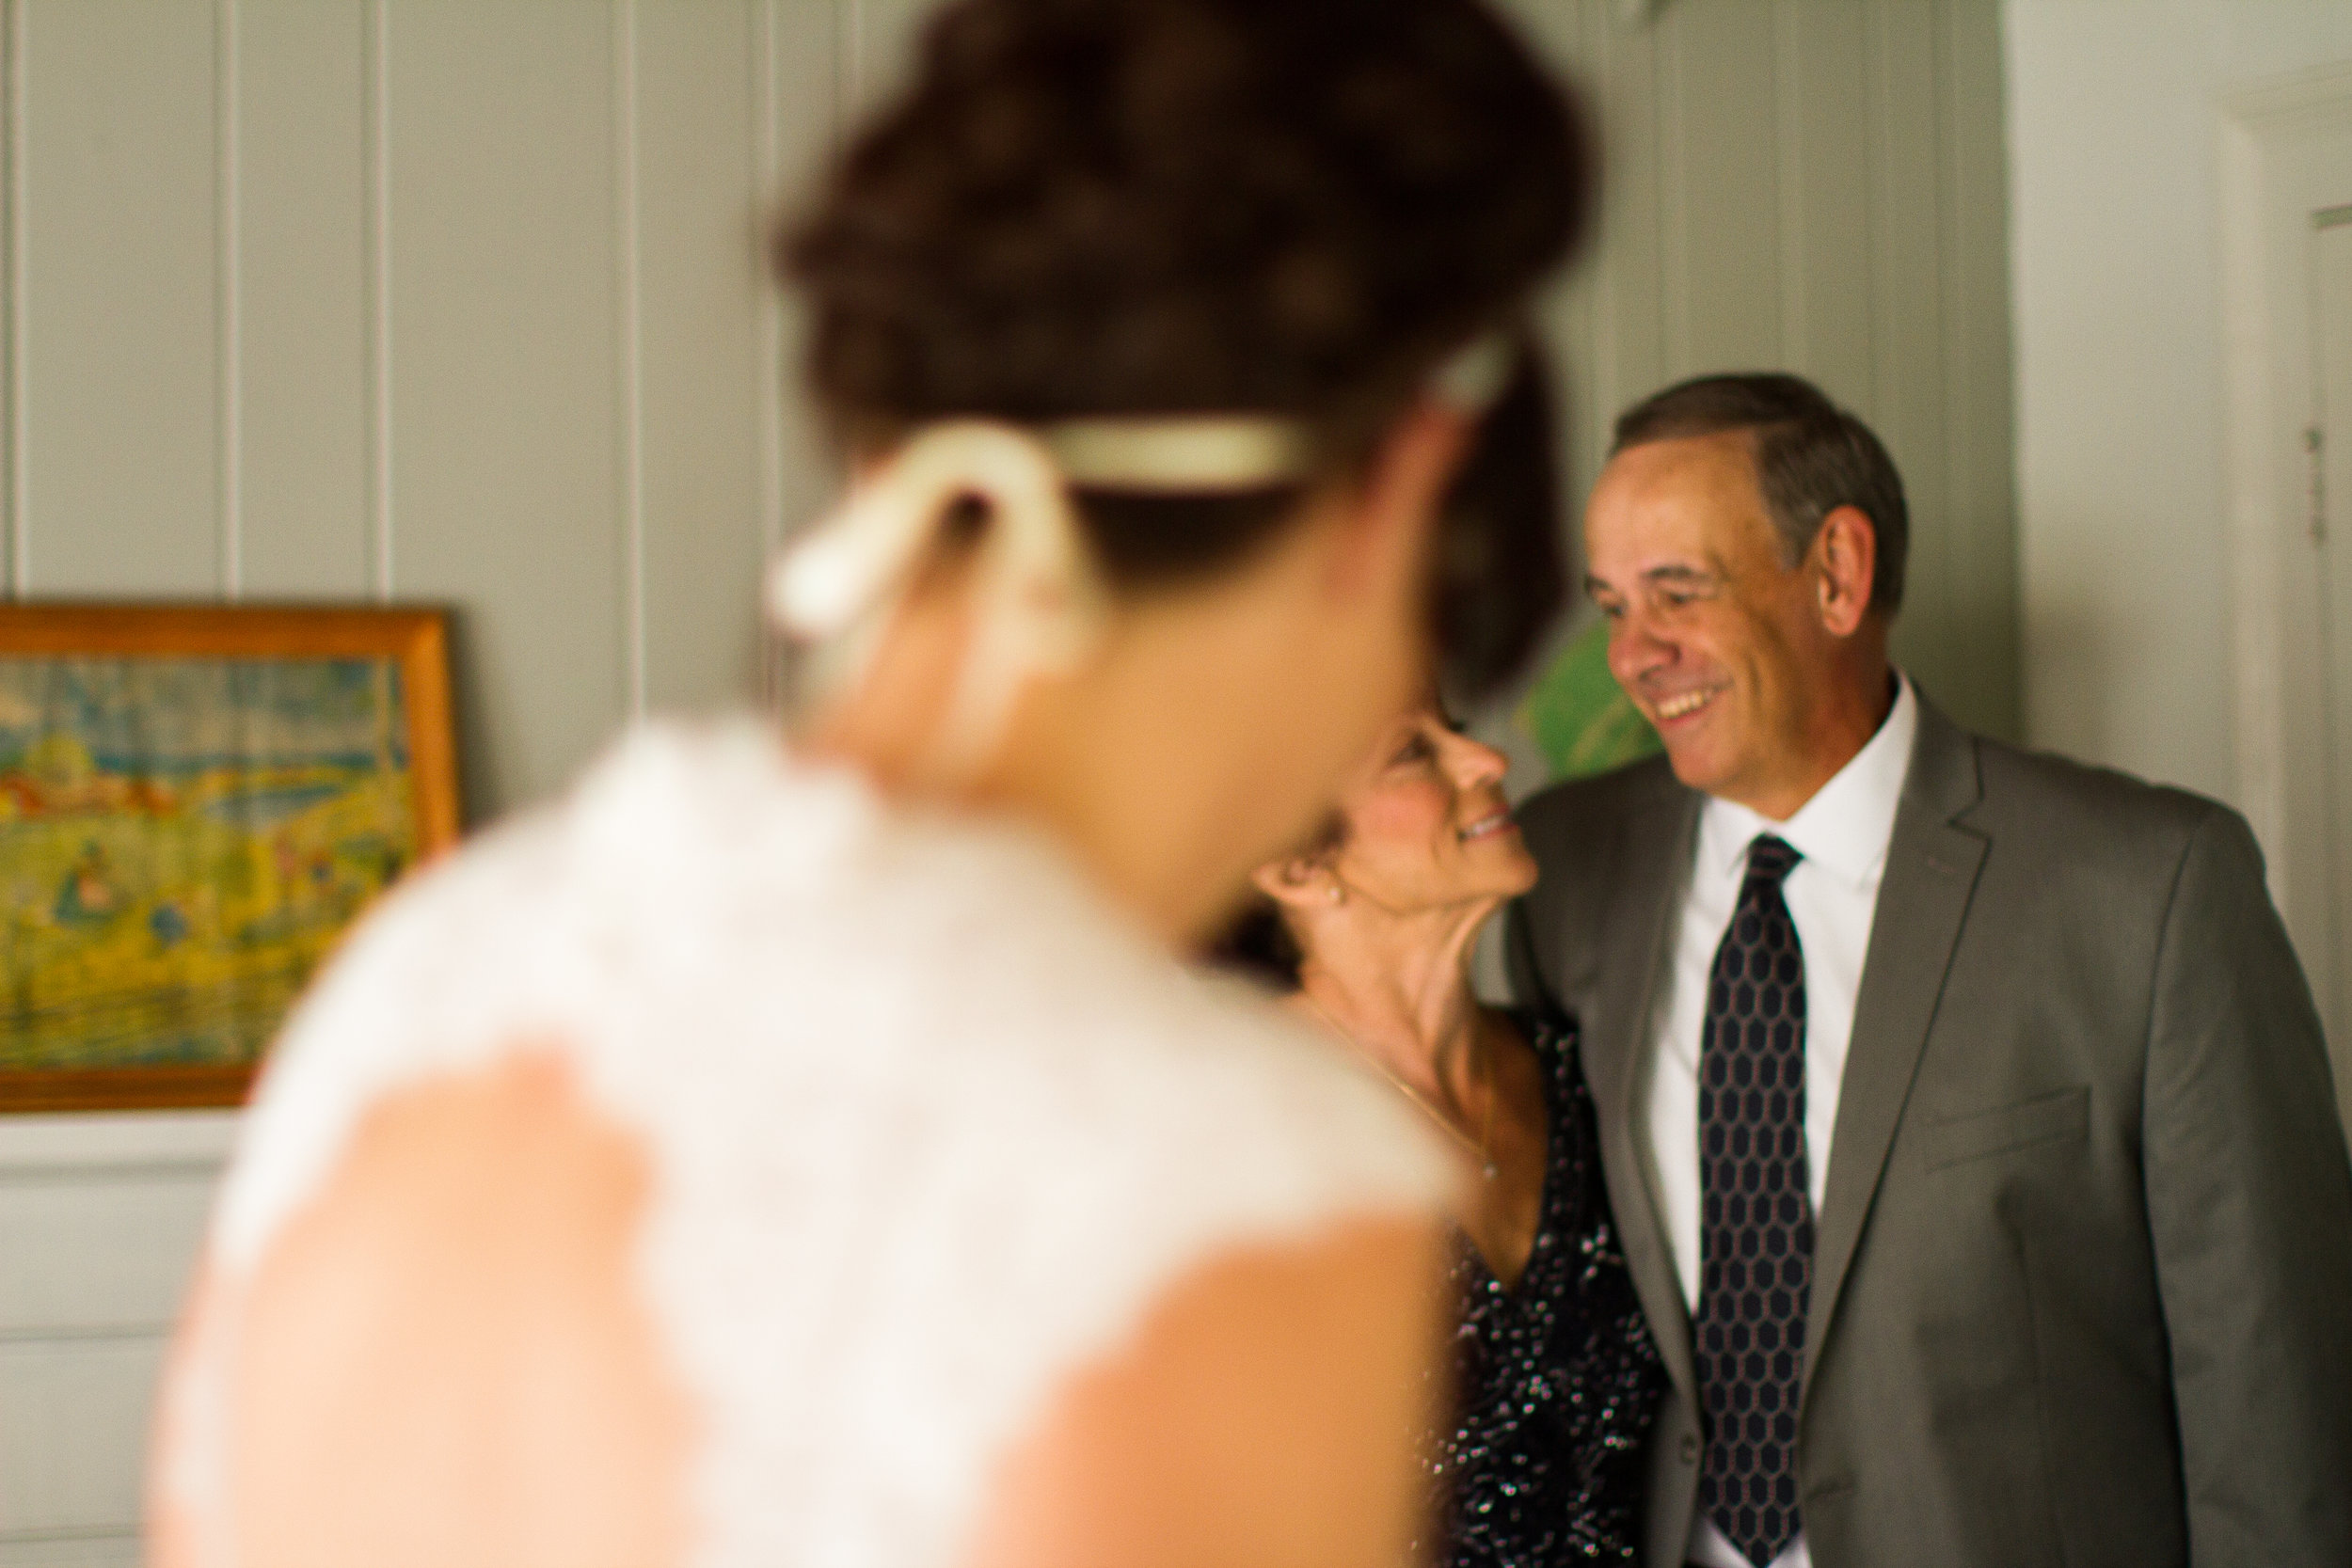 Jacqueline and Shawn Wedding (159 of 597).jpg